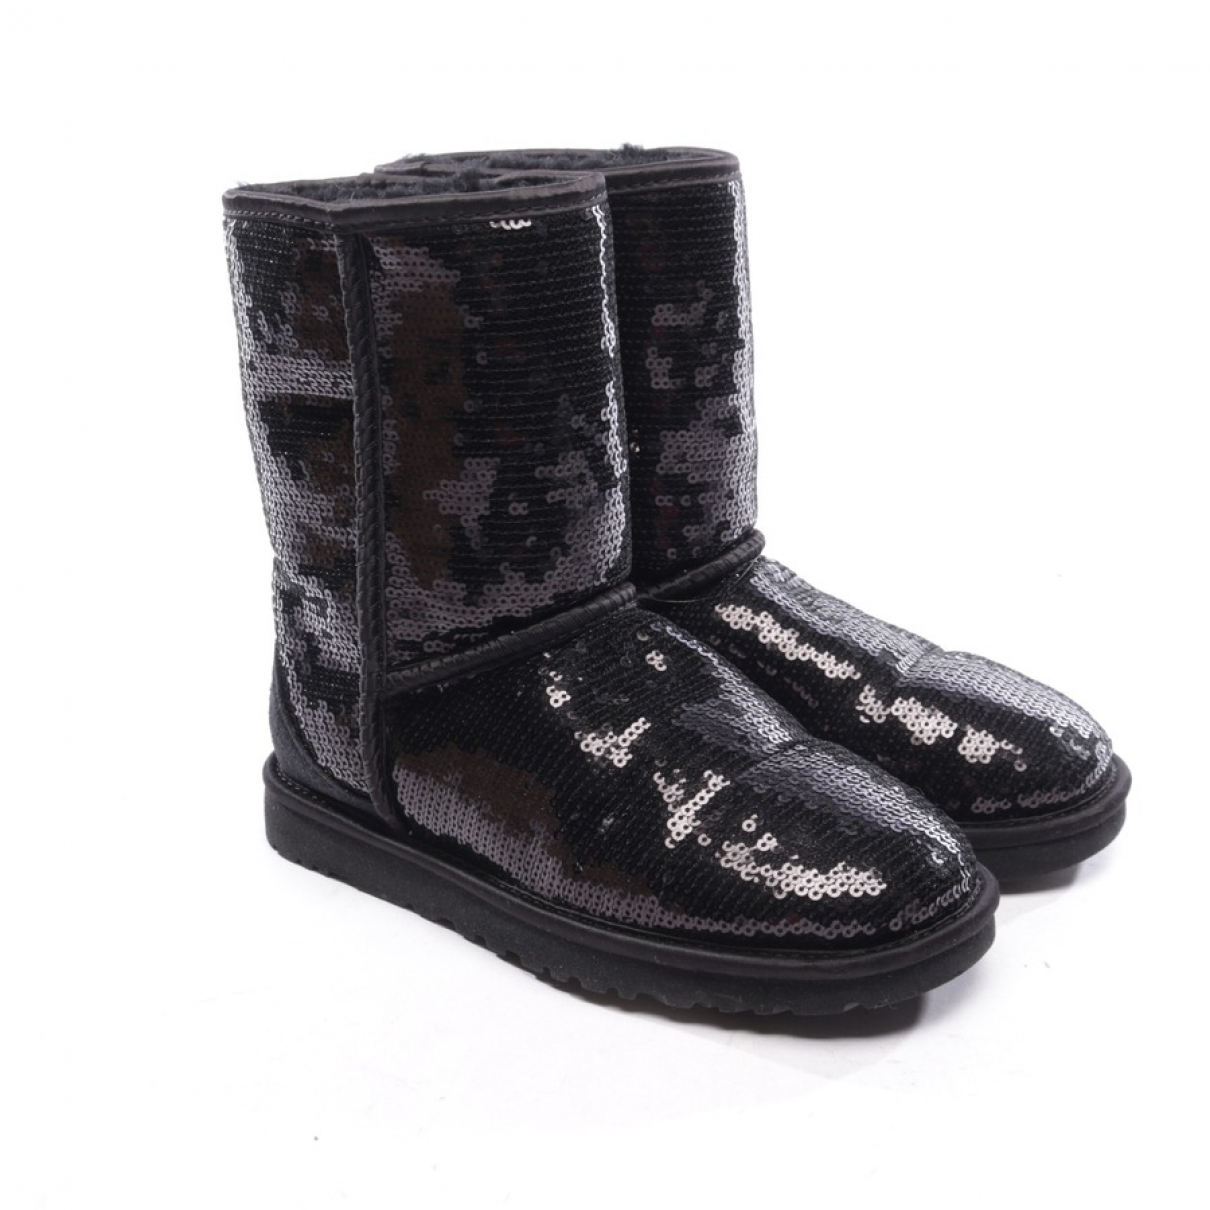 Ugg \N Black Leather Boots for Women 36.5 EU